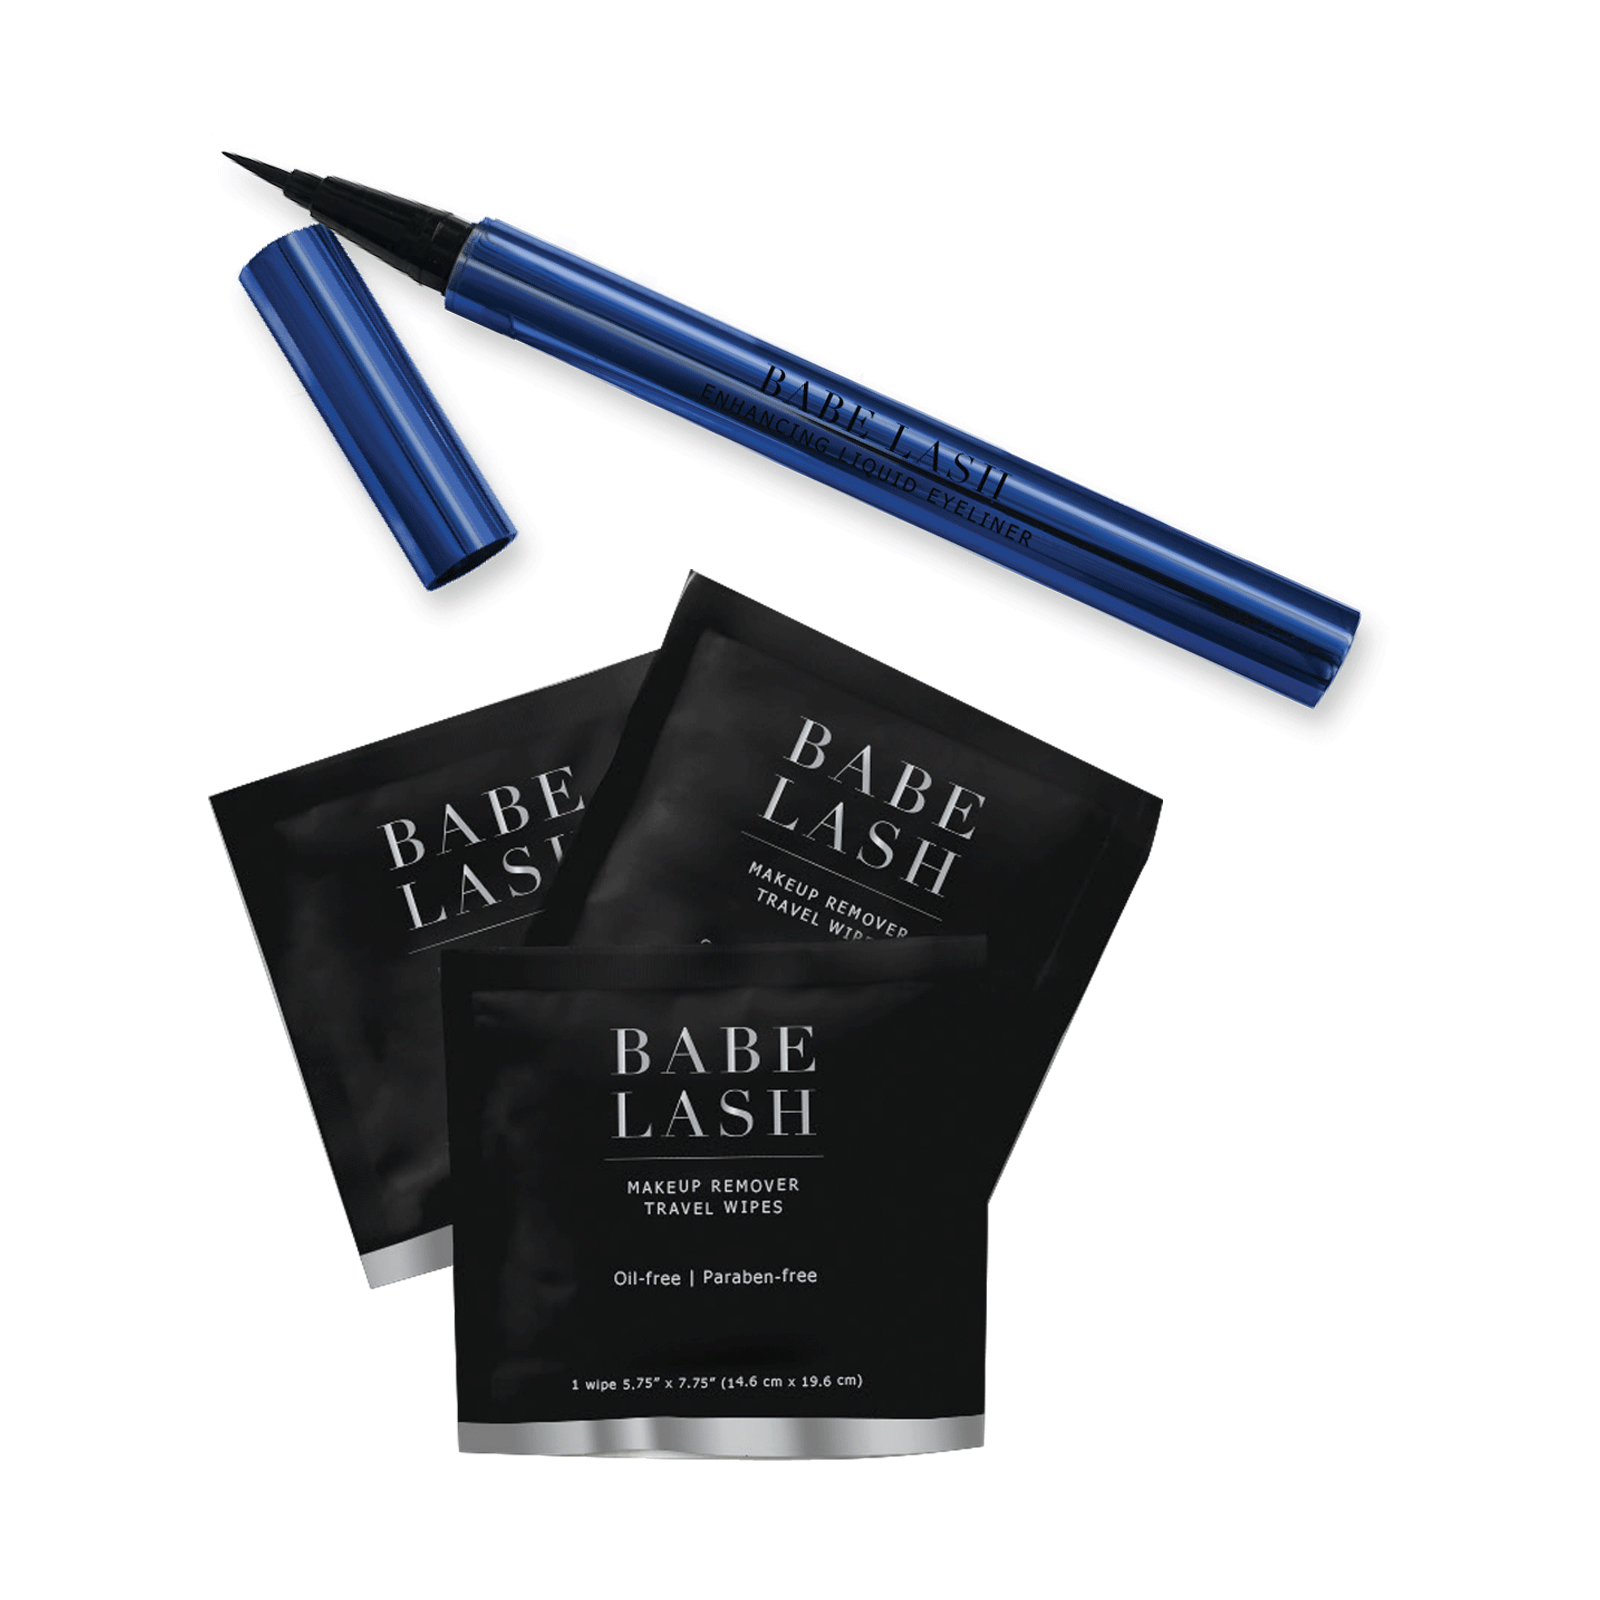 Limited Edition Enhancing Liquid Eyeliner with 3 Free Wipes